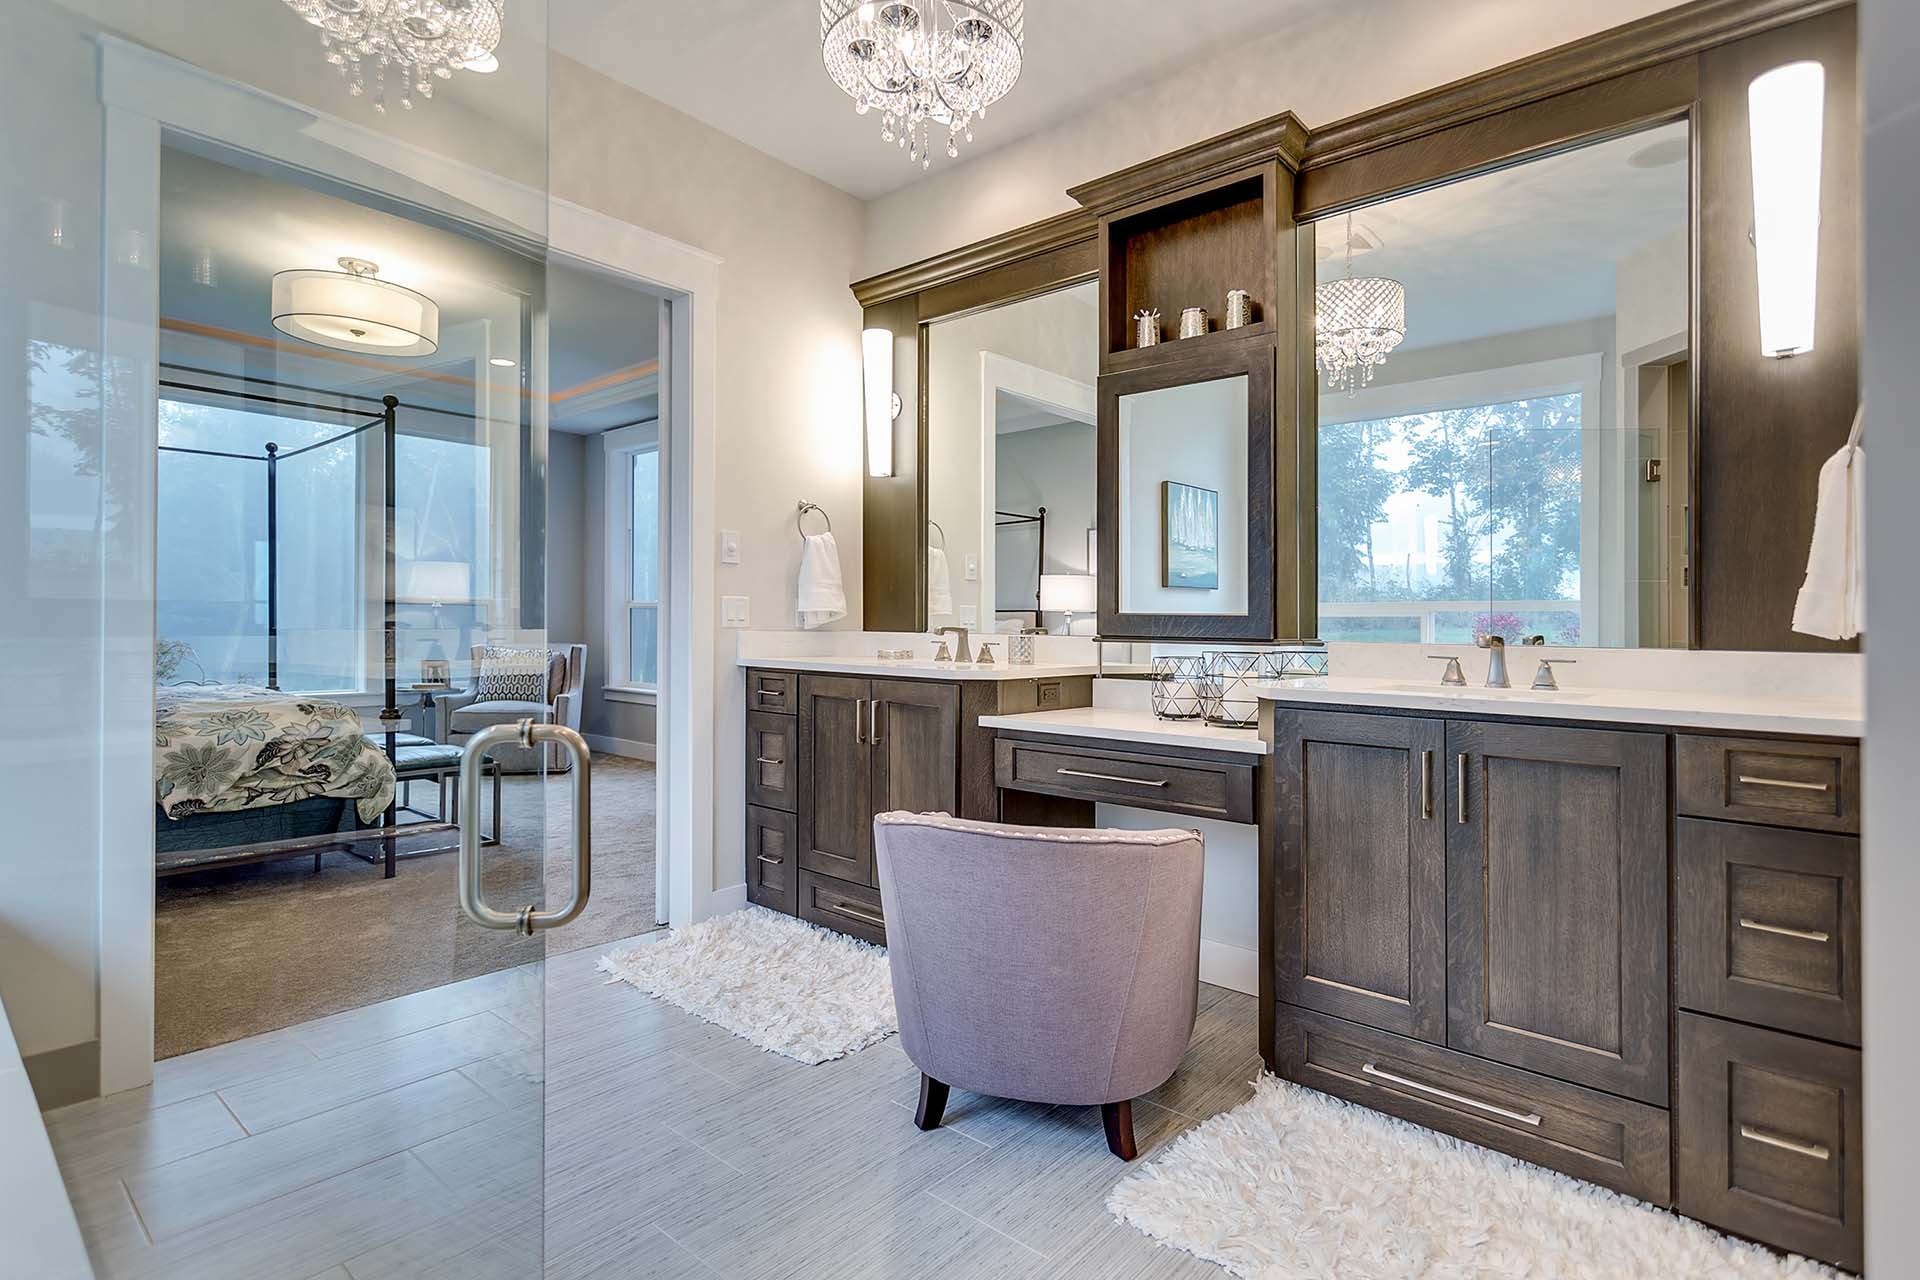 Master Bathroom Cabinetry with Vanity